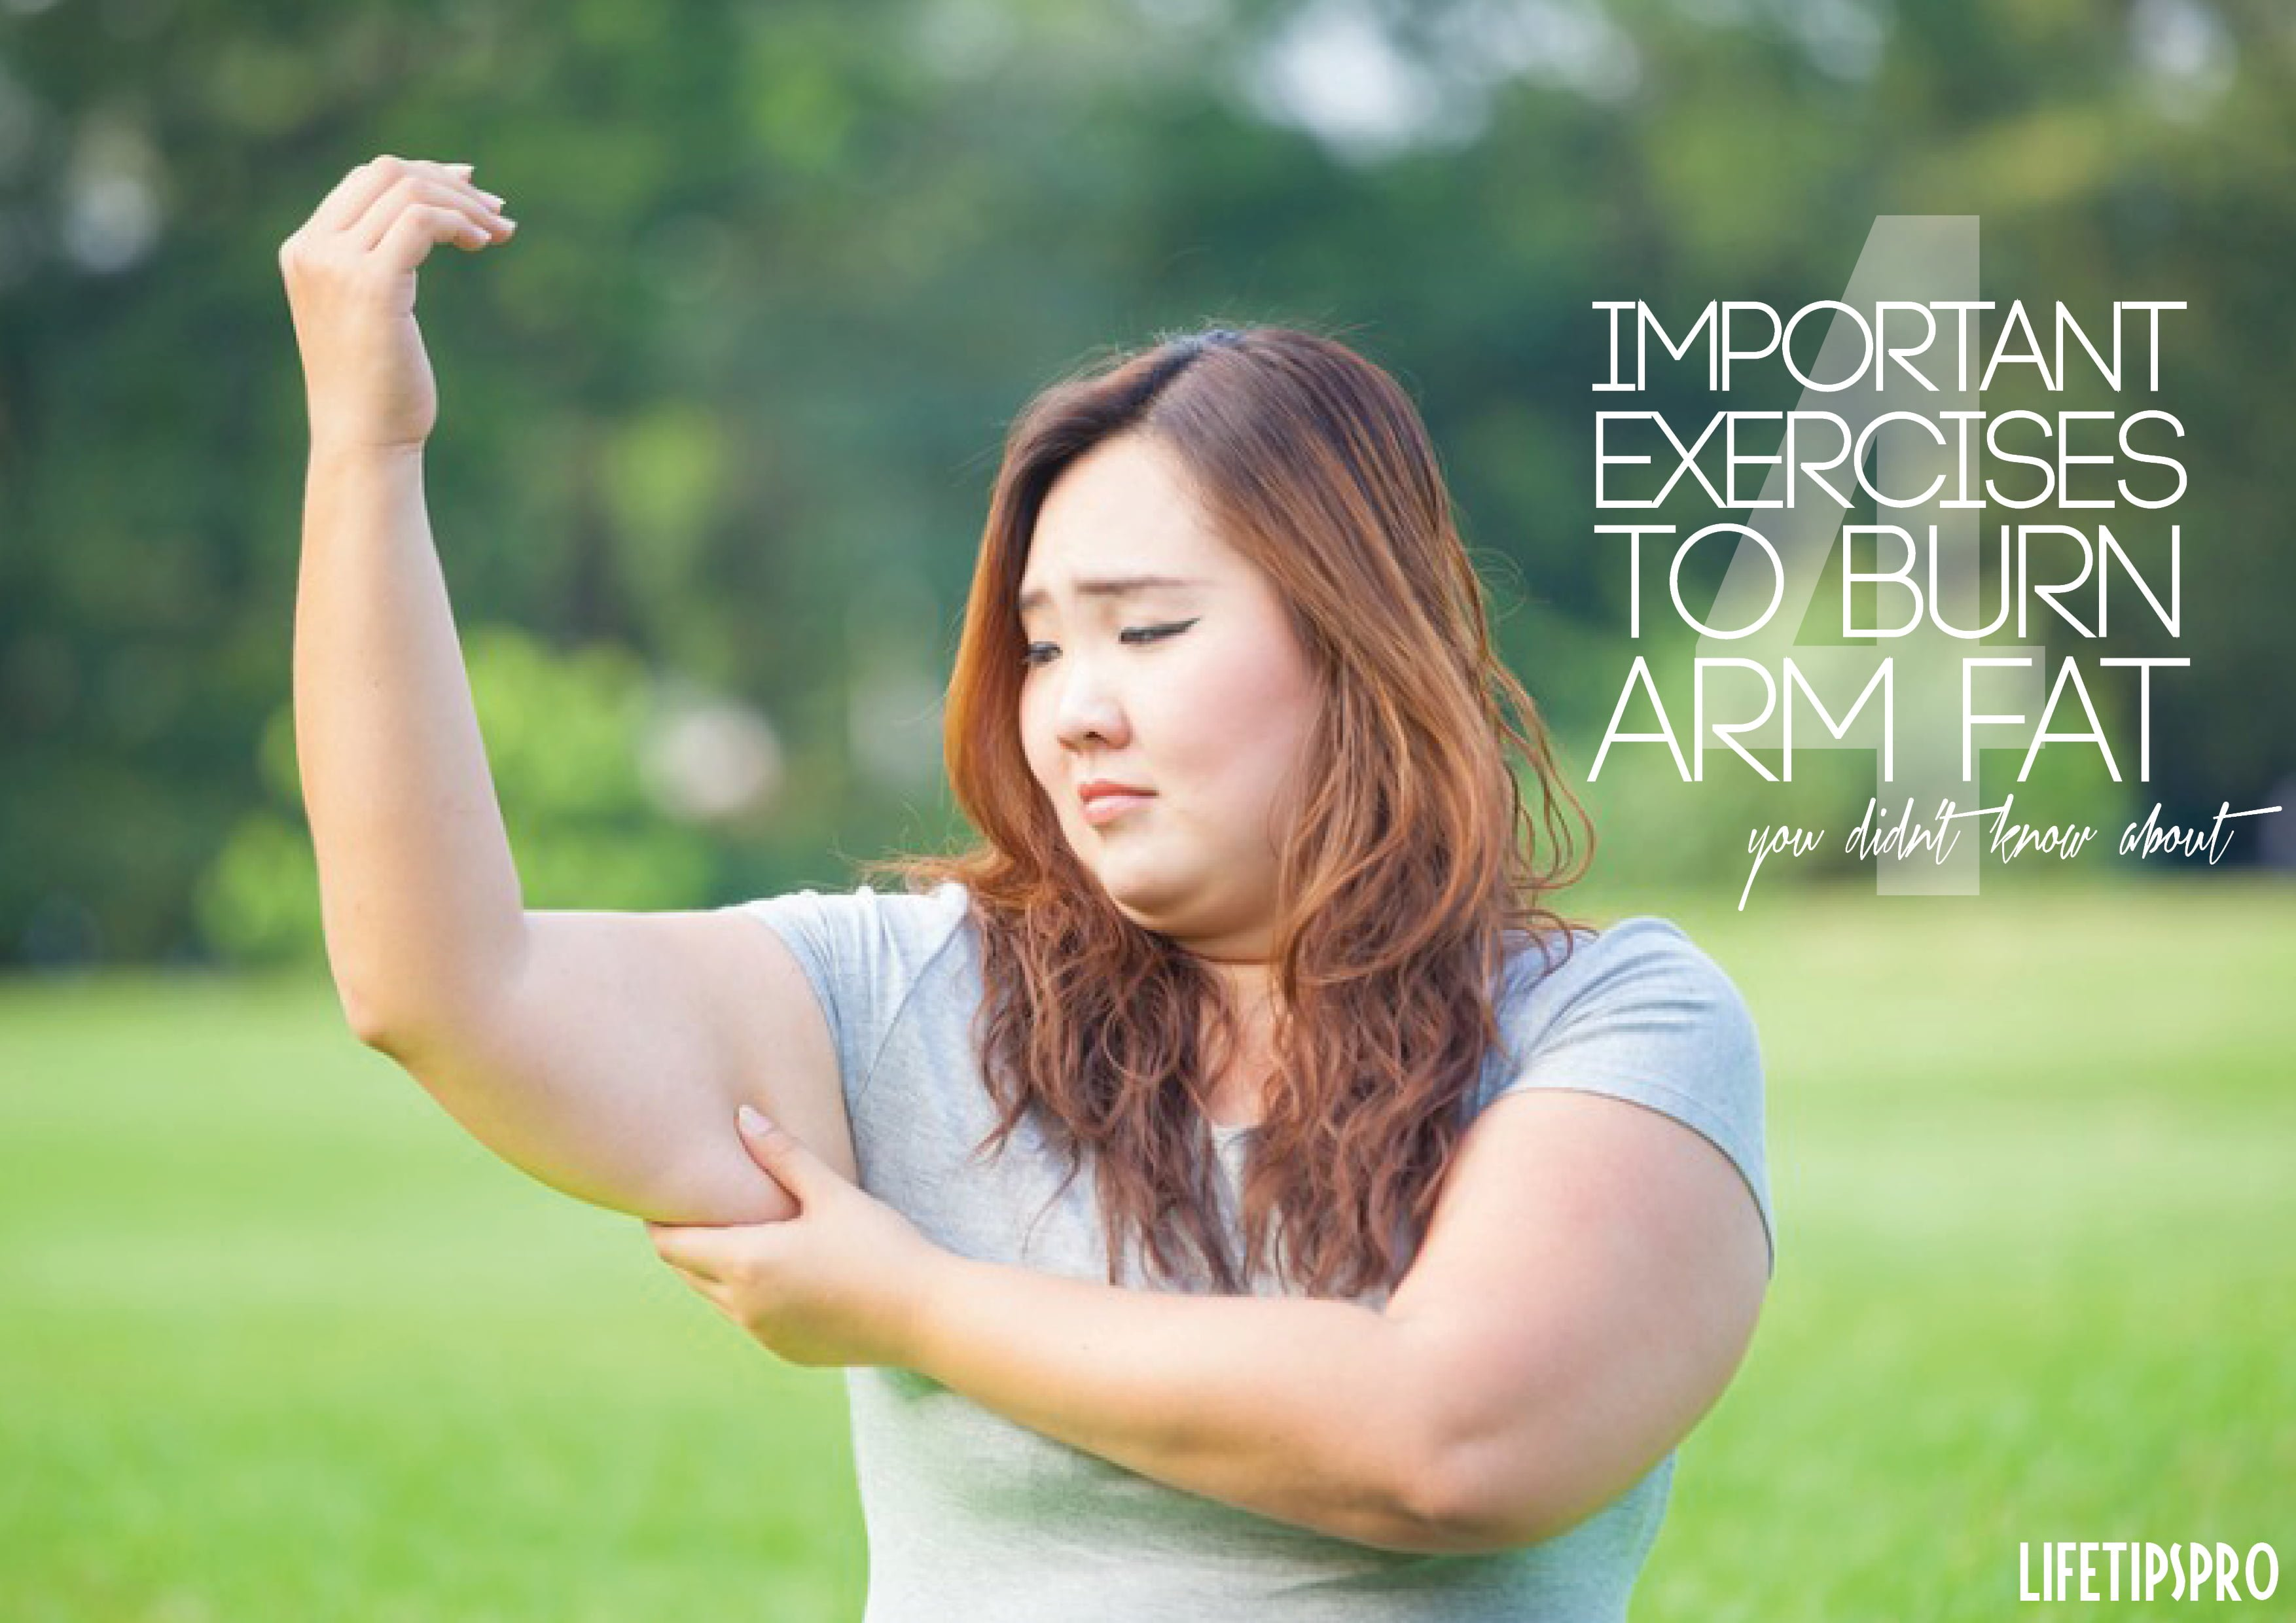 How to lose arm fat? 4 best exercises to get toned arms fast. - Life ...